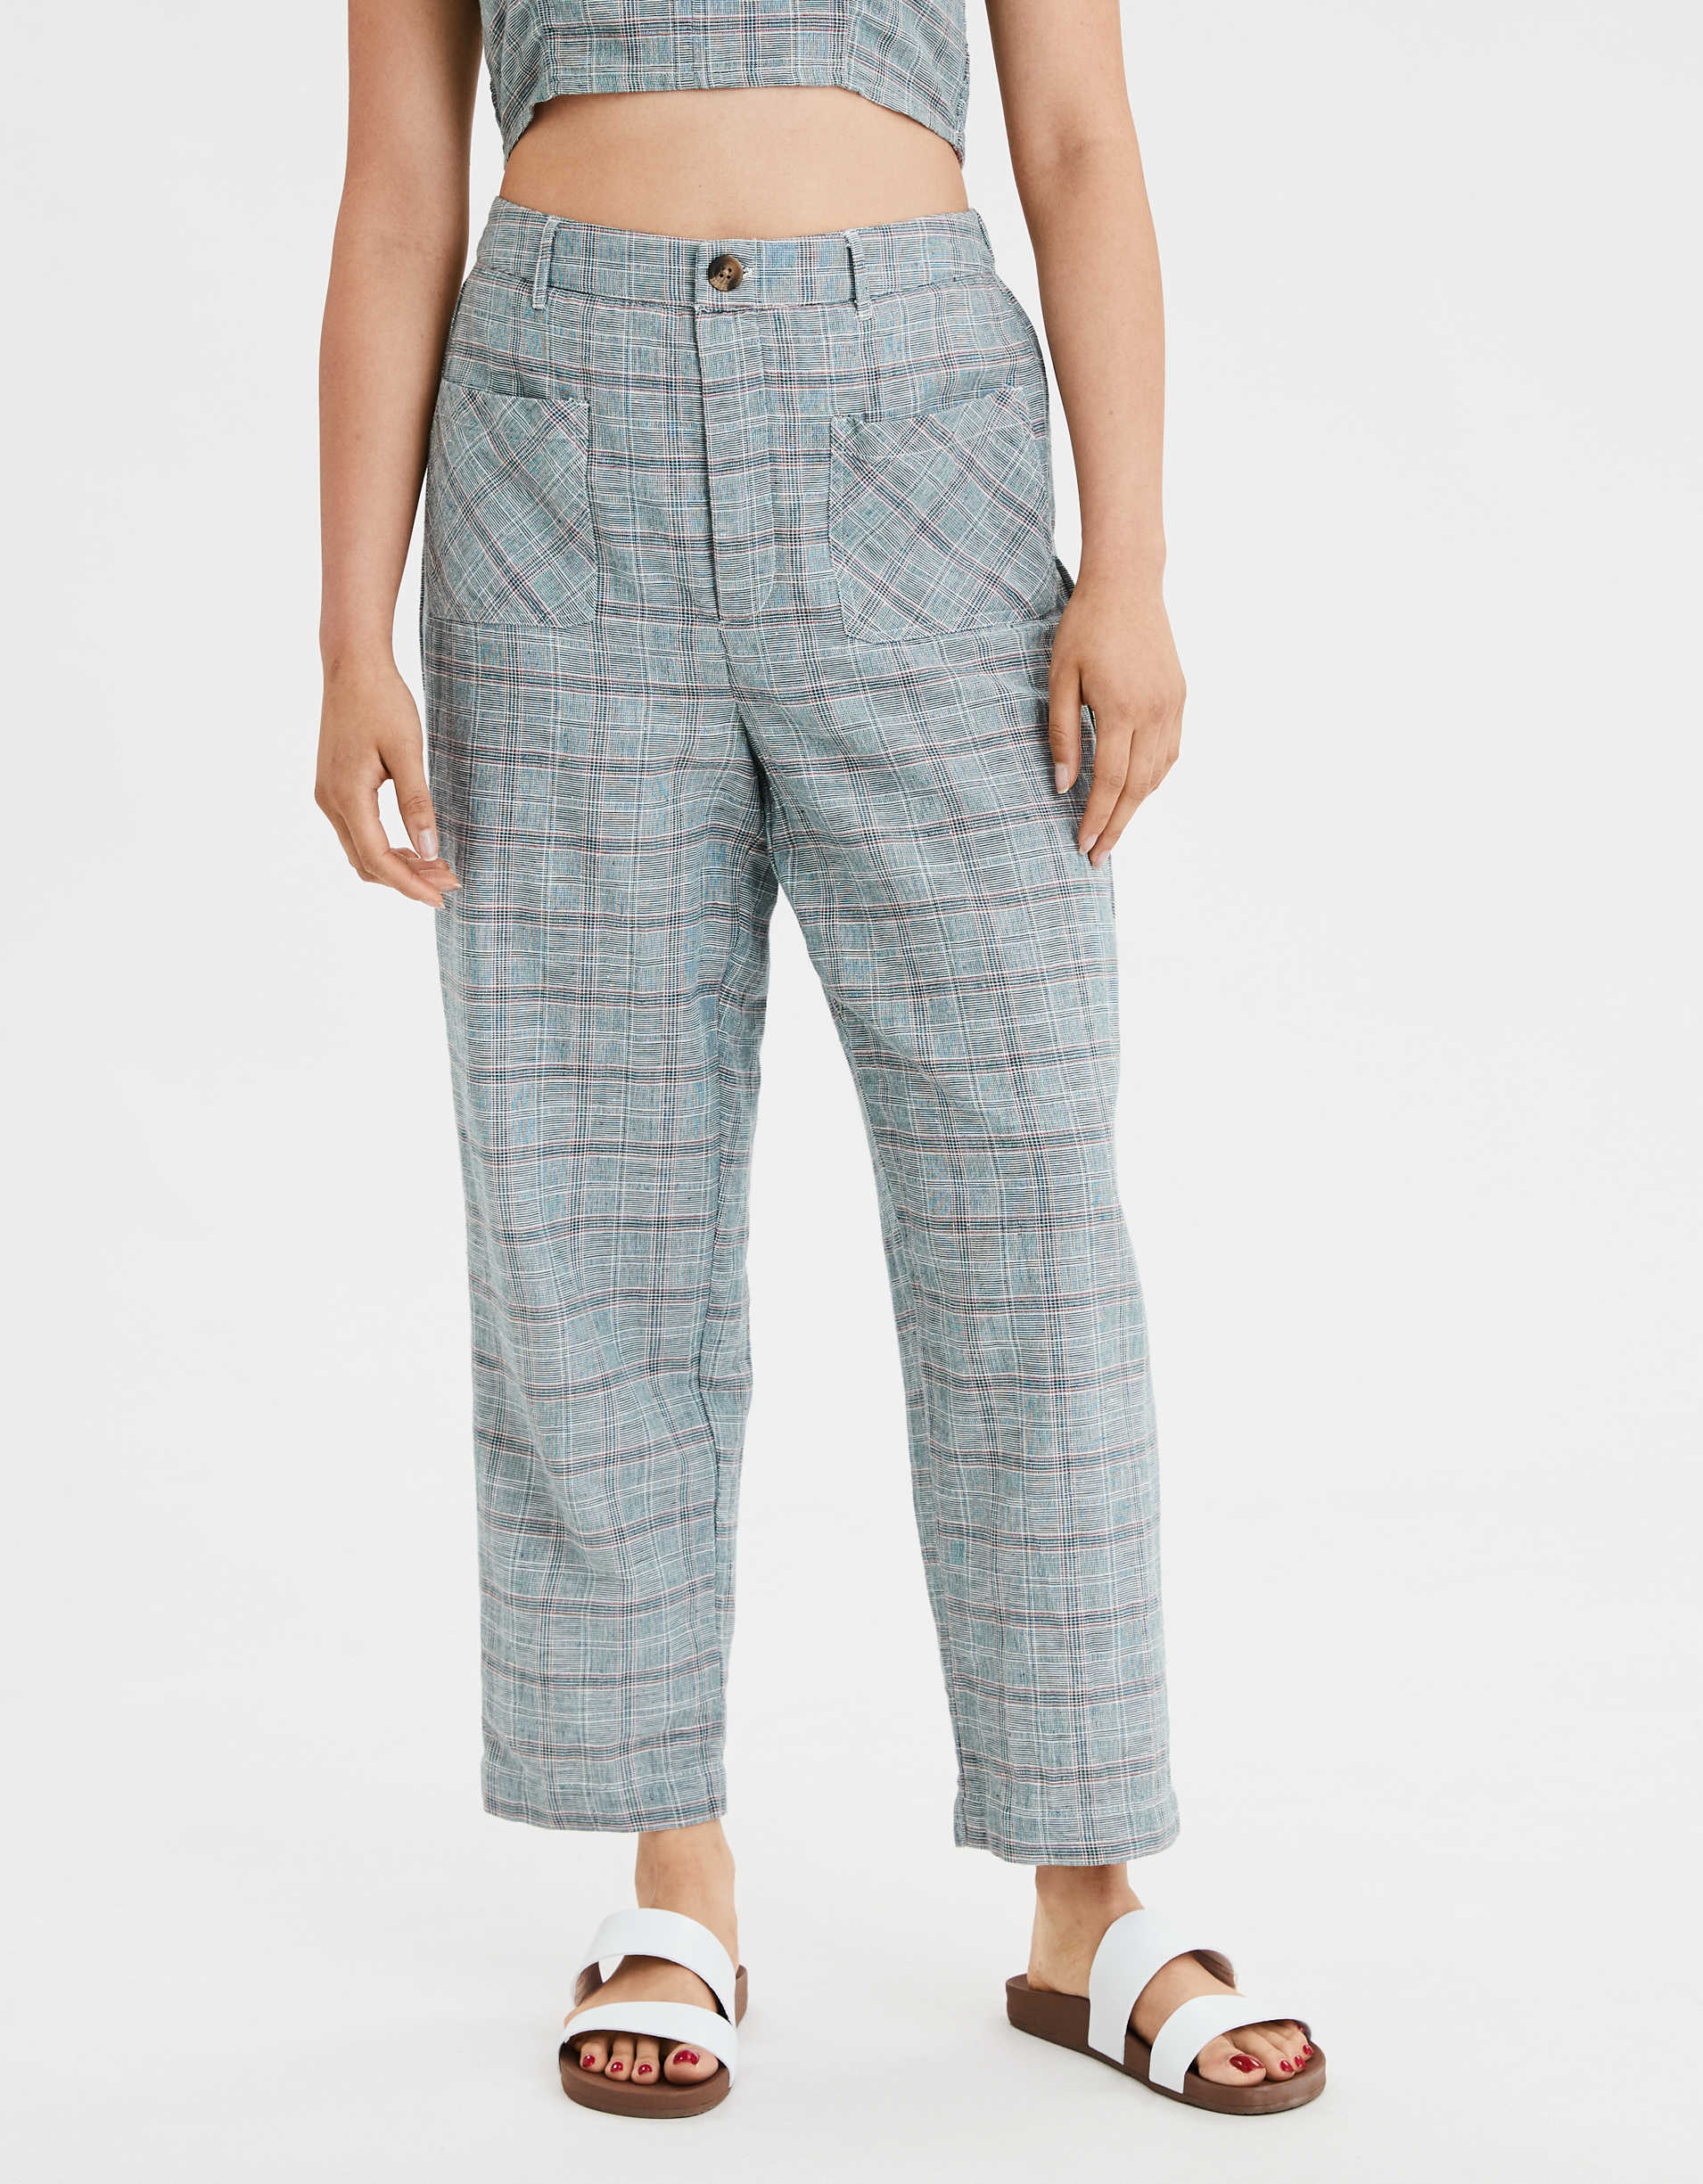 AE High-Waisted Plaid Pant